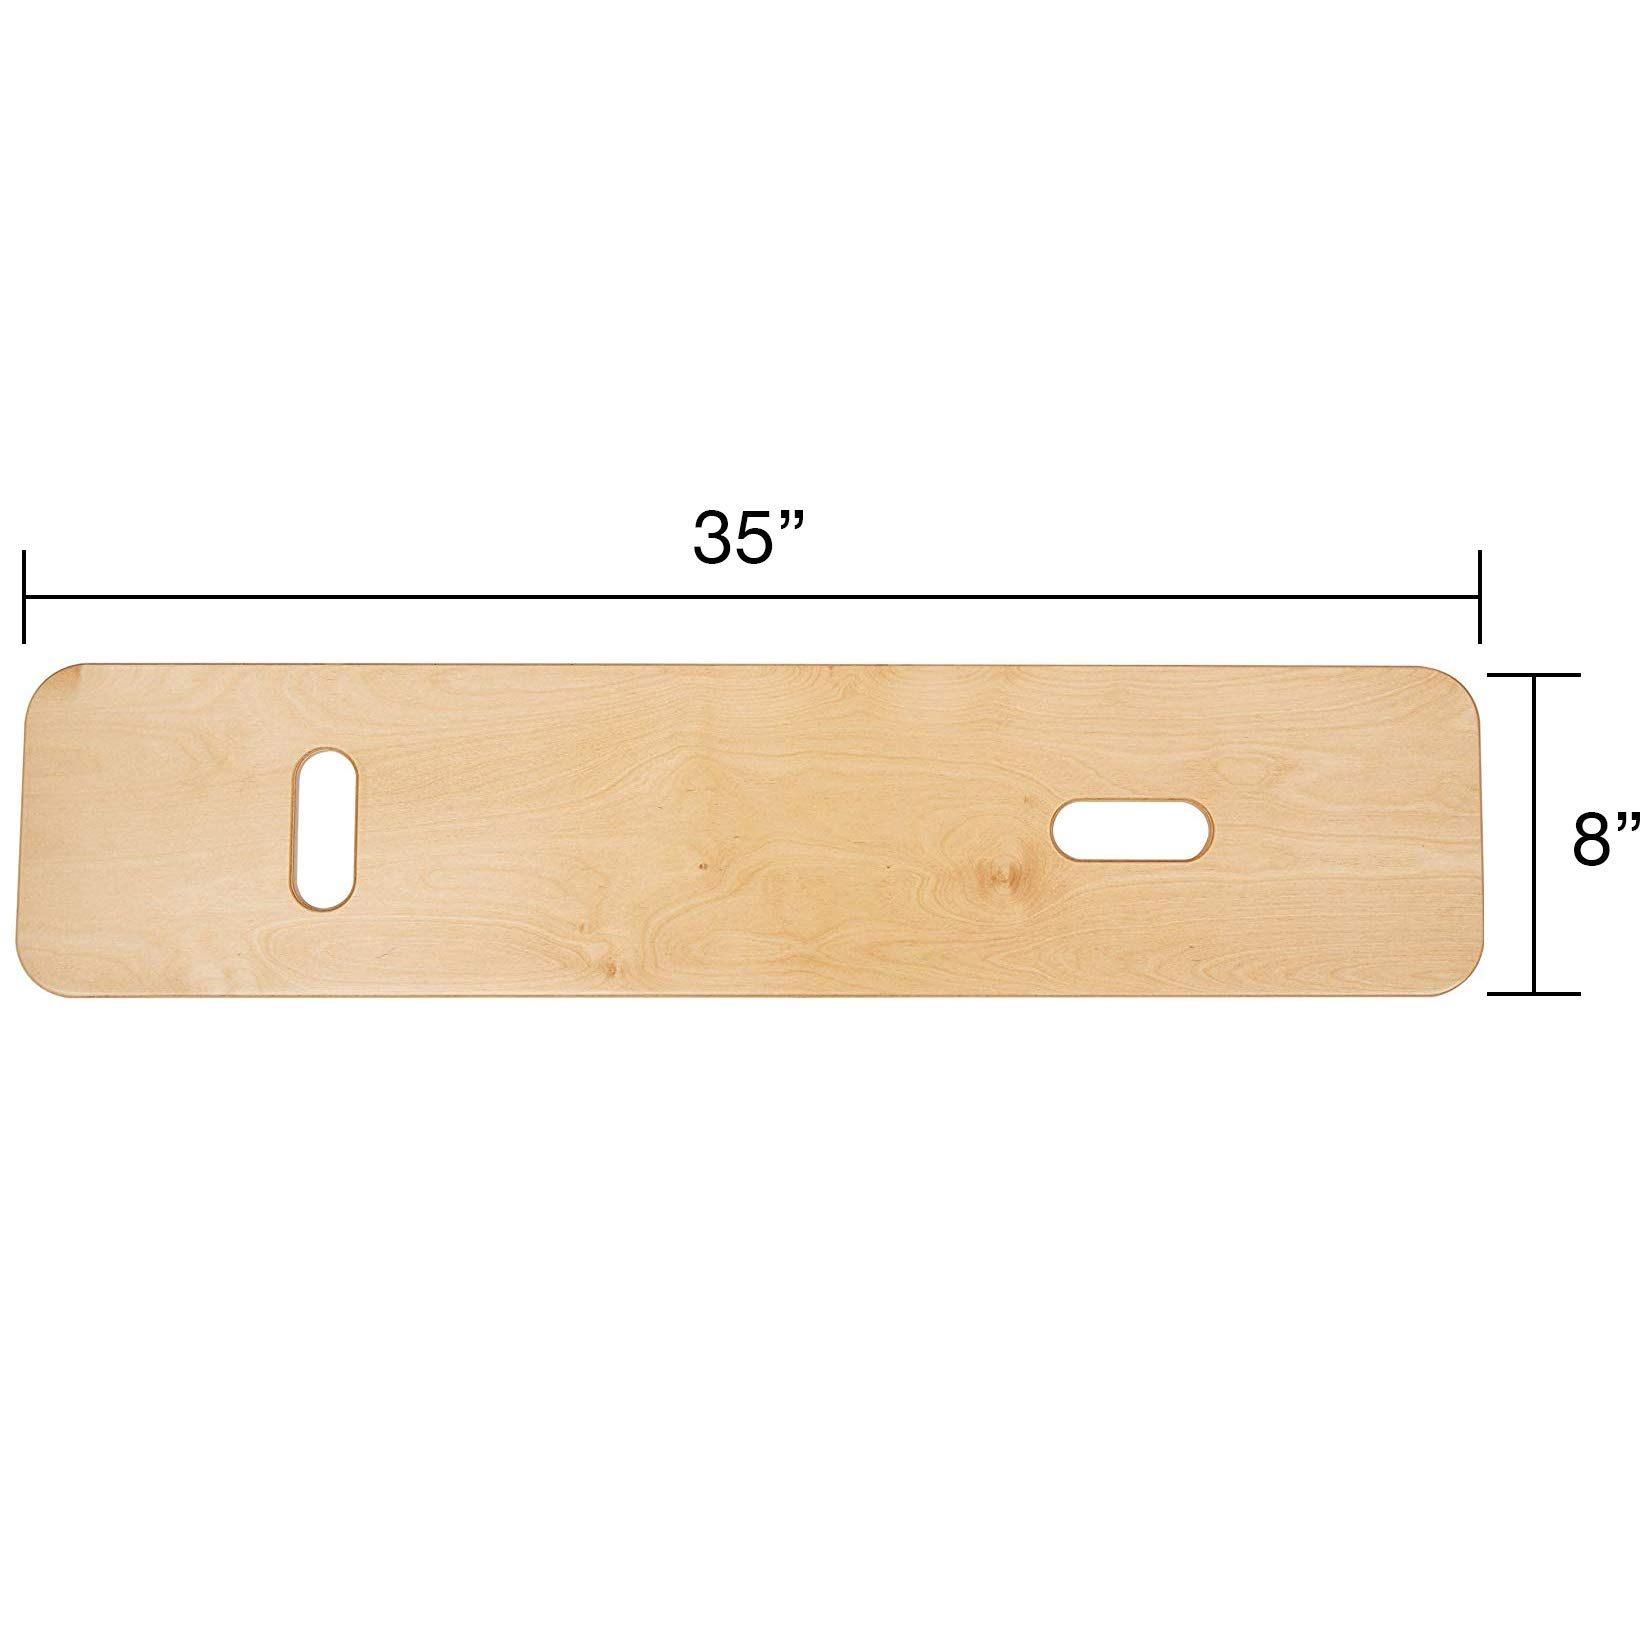 Sammons Preston Bariatric Transfer Board for Wheelchair Users, Wooden Slide Board with Handles, 35'' Long & Strong Wood Slider Board with 600 lbs. Capacity by Sammons Preston (Image #3)